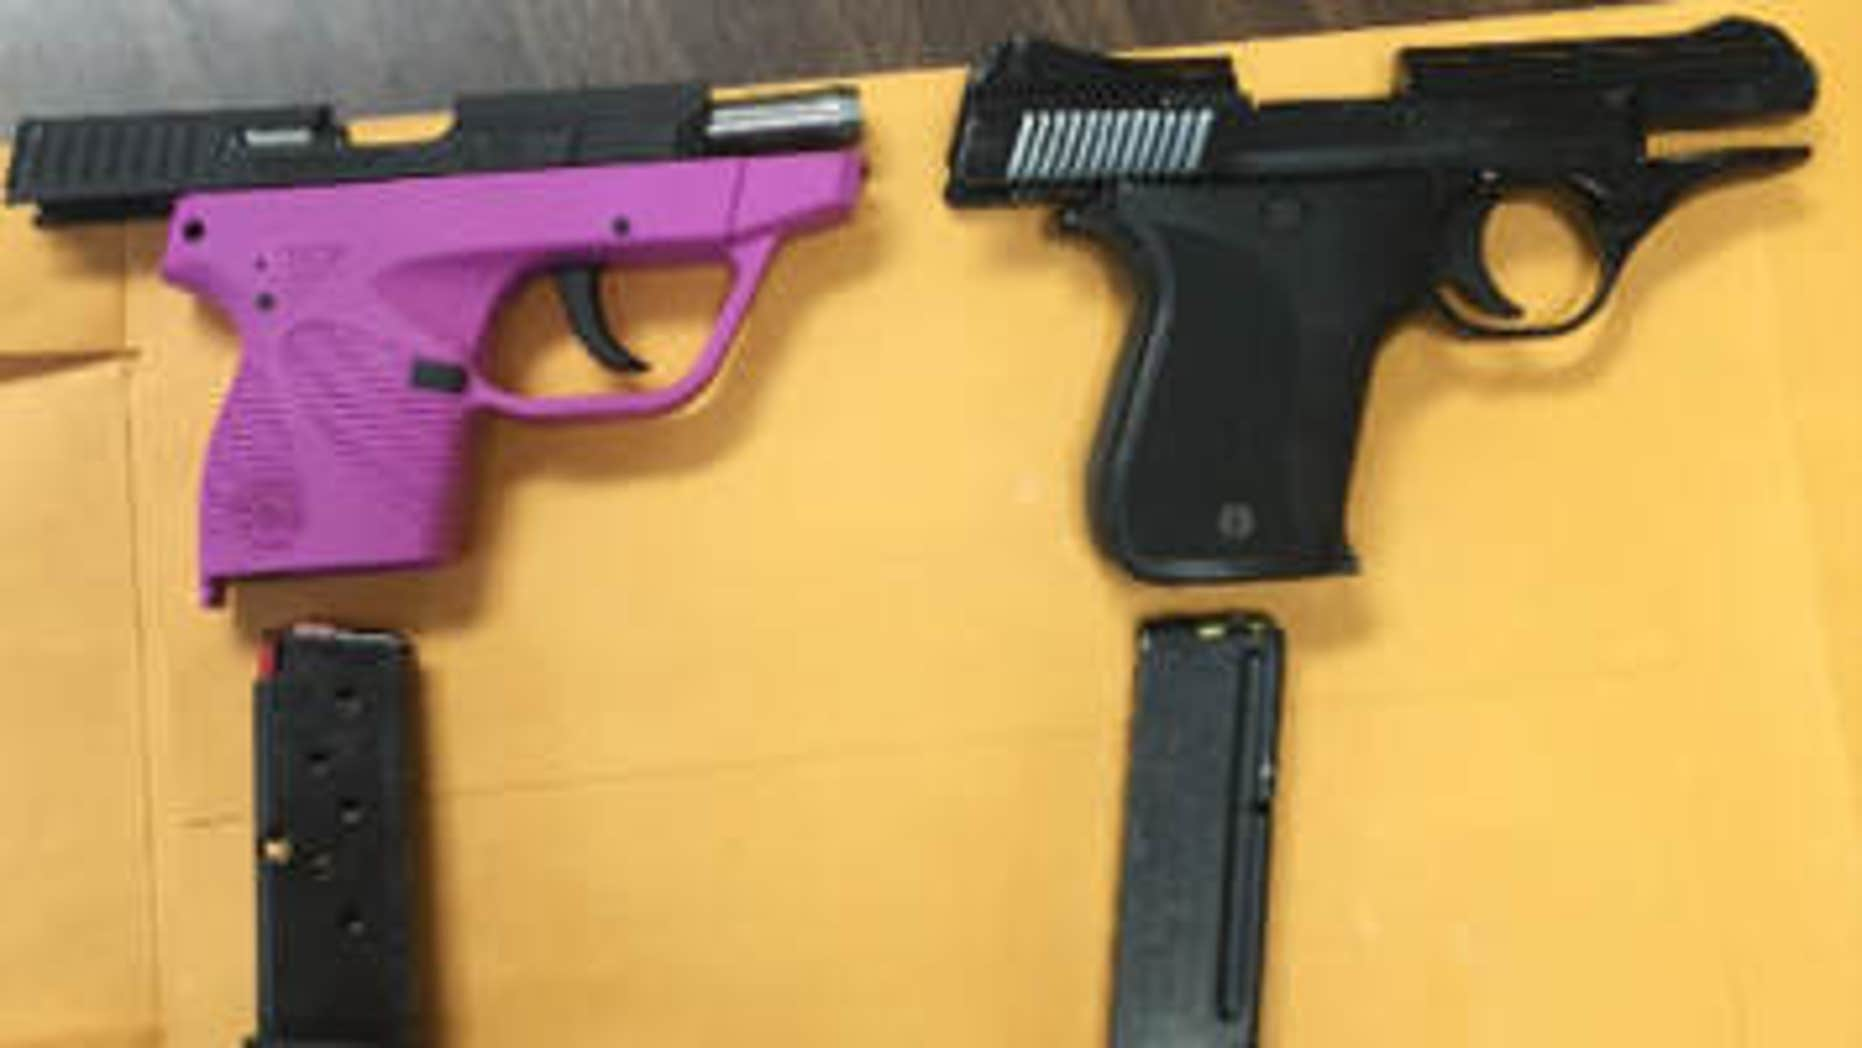 April 30, 2015: In this photo provided by Kentucky State Police, handguns sit on a table.